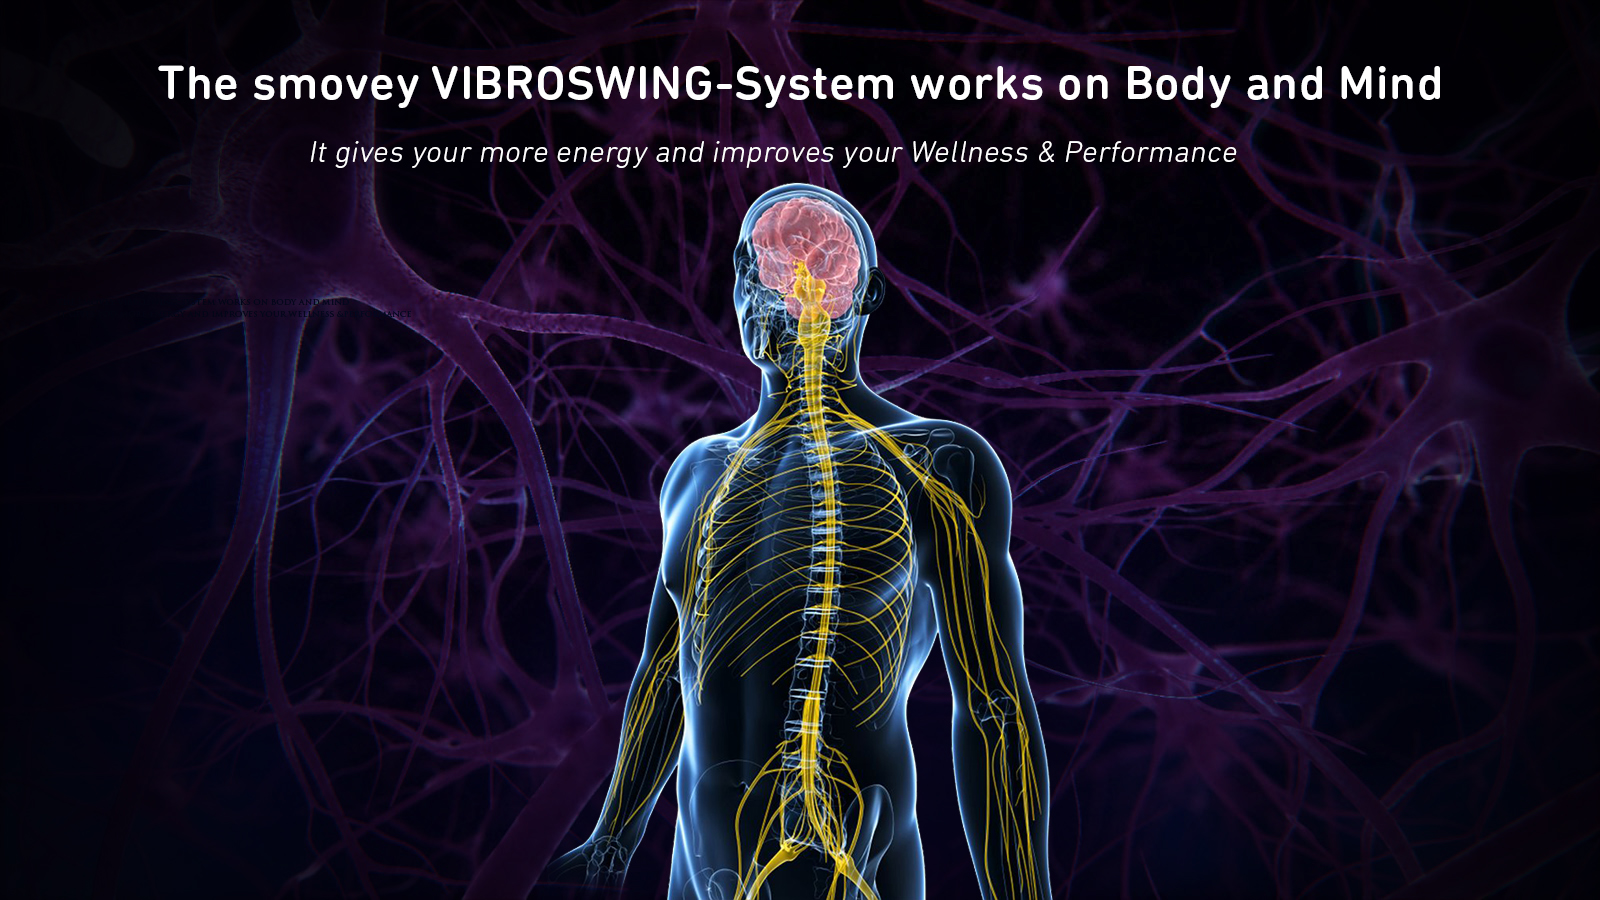 smovey VIBROSWING-System works on Body and Mind